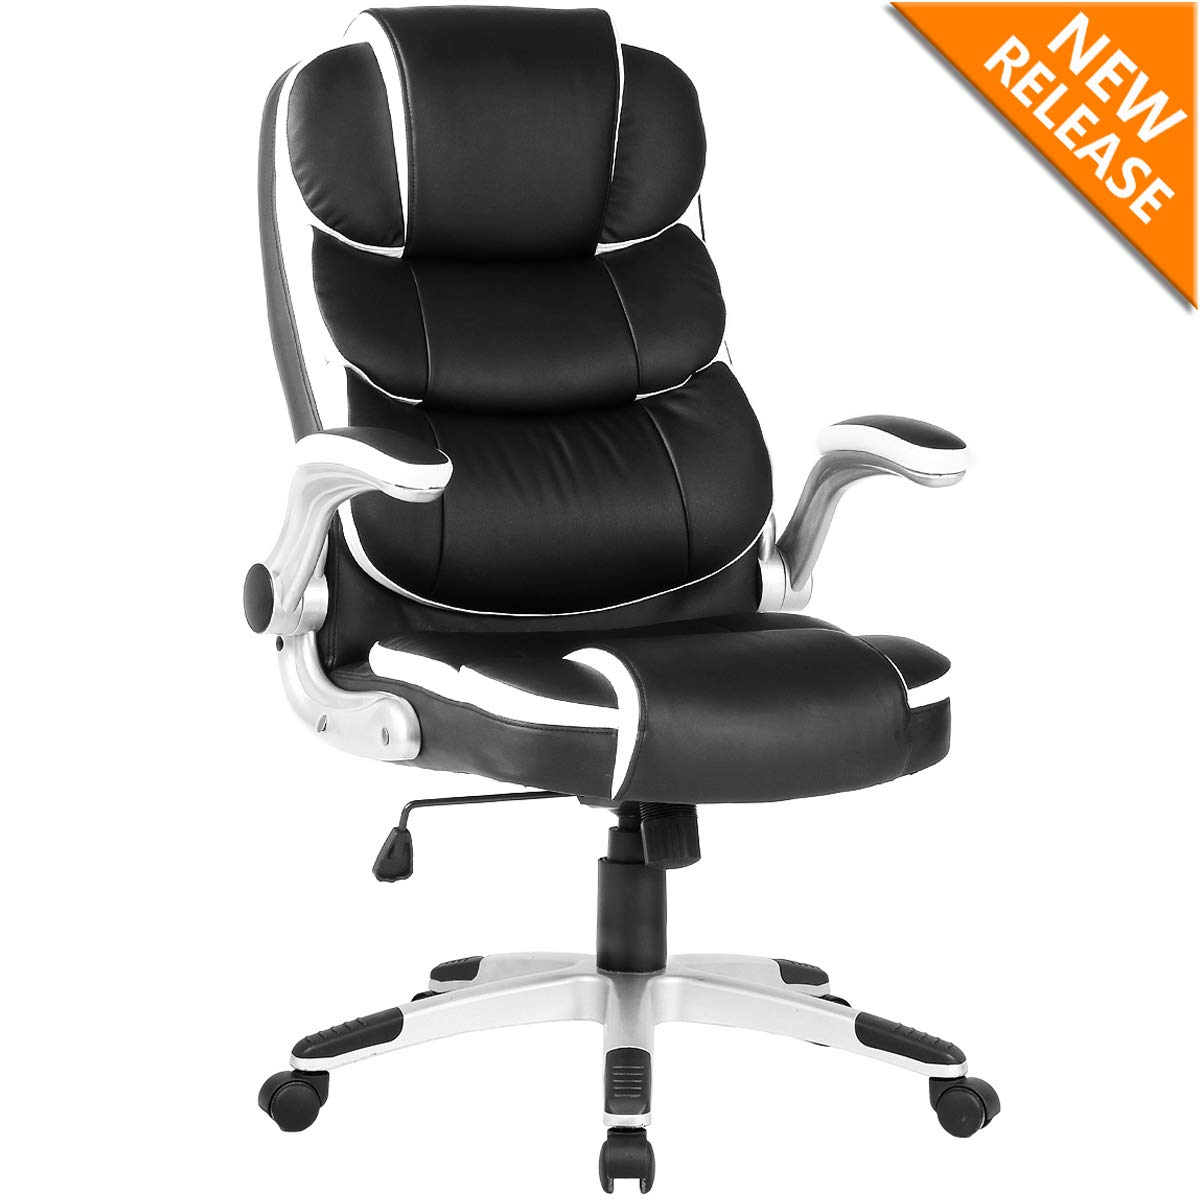 YAMASORO High-Back Executive Office Chair Leather, Adjustable Ergonomic Swivel Computer Desk Chair with Flip-up Armrest,Back Support for Working, Studying (Black)